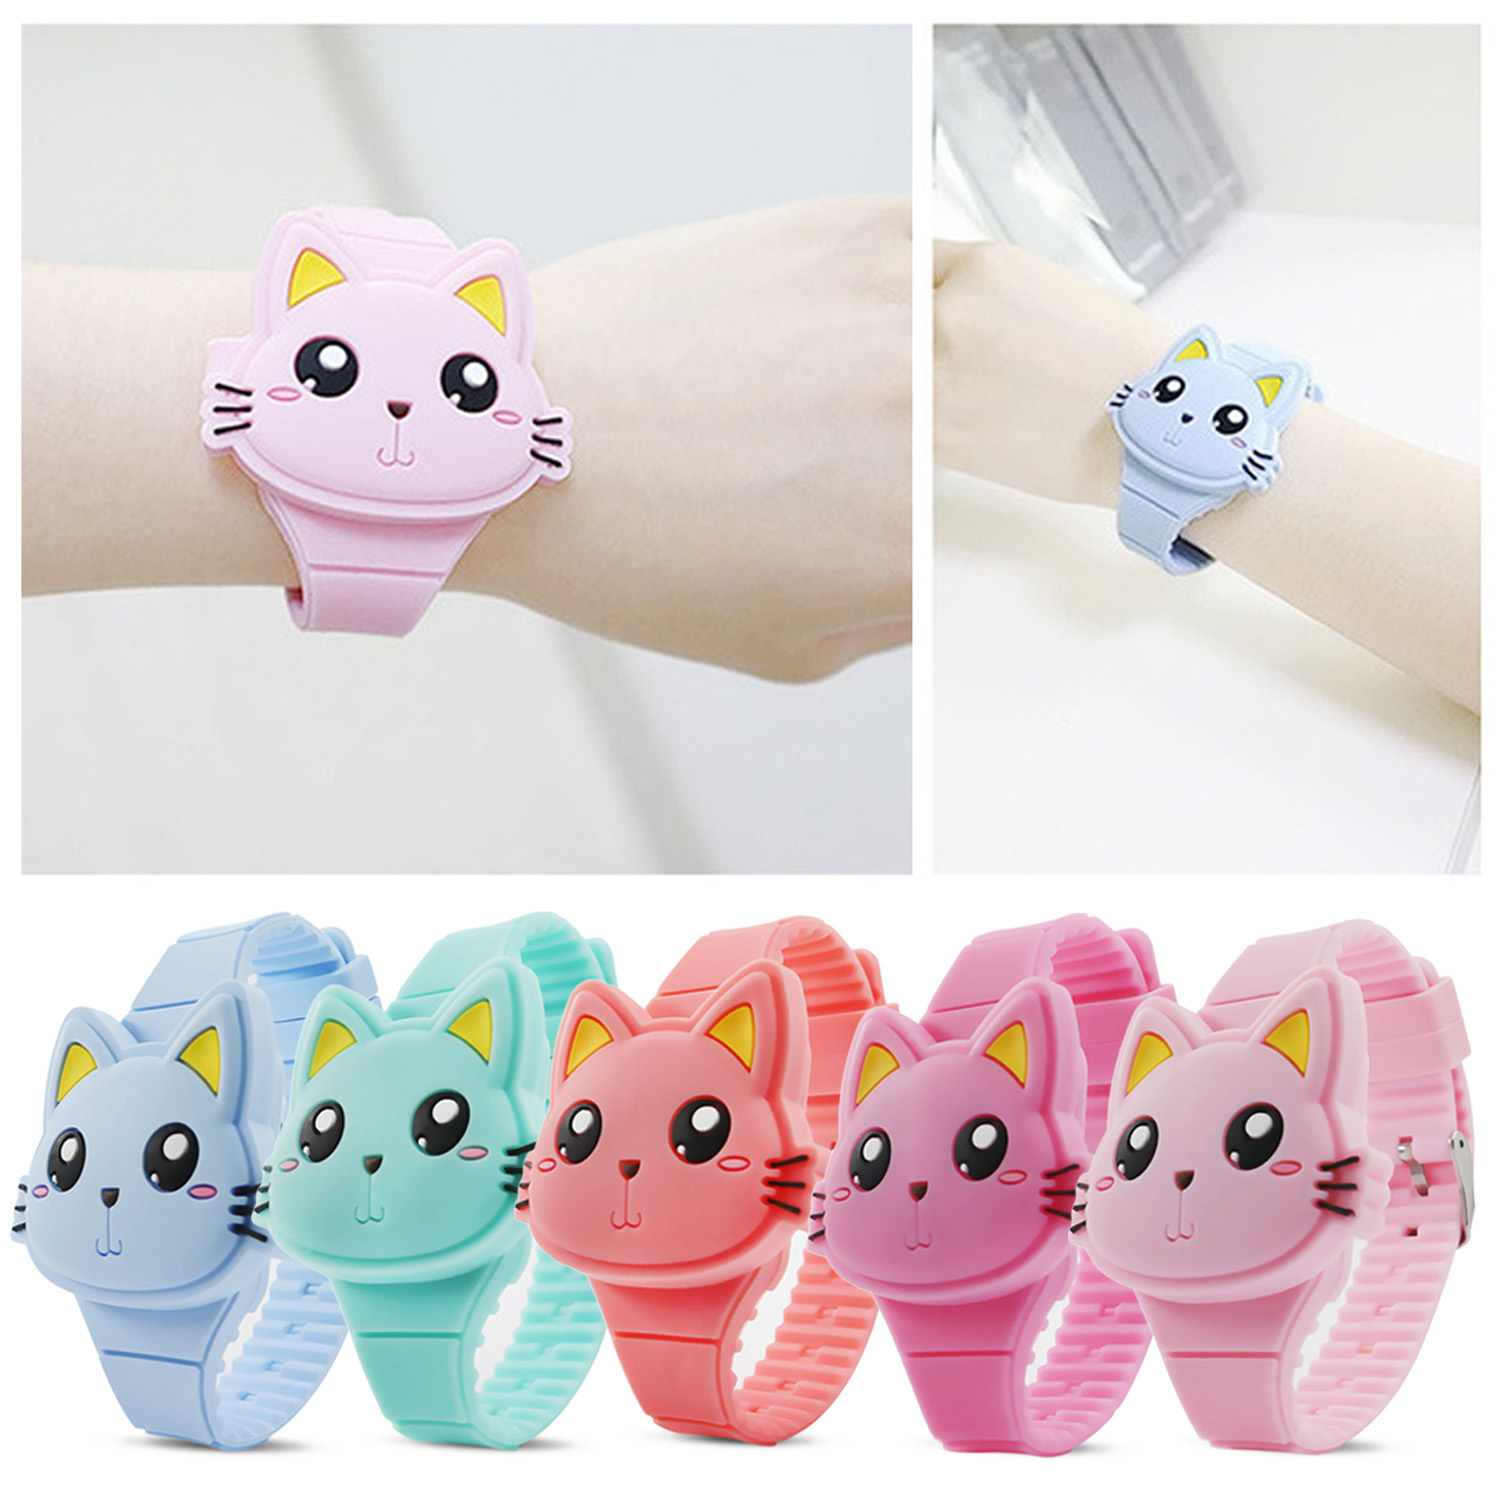 Kids Watch Cute Cartoon Cat Shape Clamshell Design LED Electronic Digital Wrist Watch With Silicone Strap For Children Toddlers